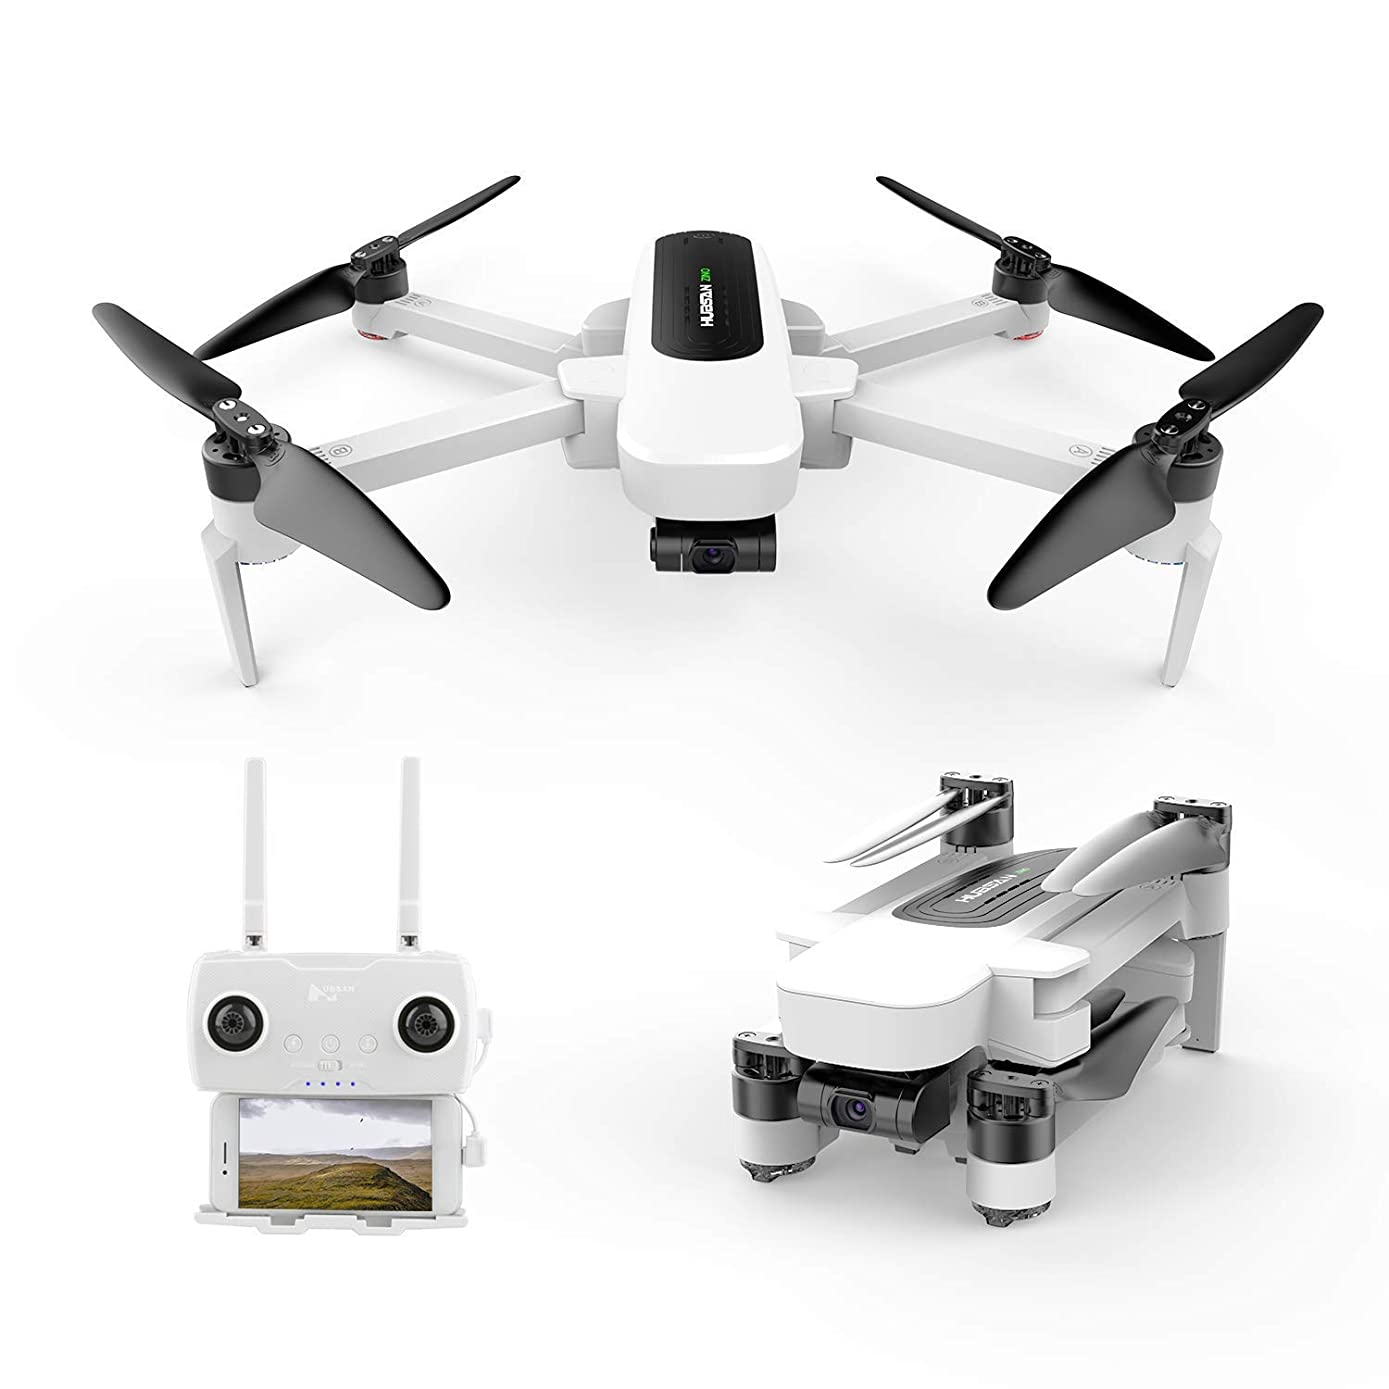 HUBSAN Zino Drone with 4K Camera H117S GPS WiFi 5G Brushless Motor Foldable Arm 3-Axis Gimbal RC Quadcopter